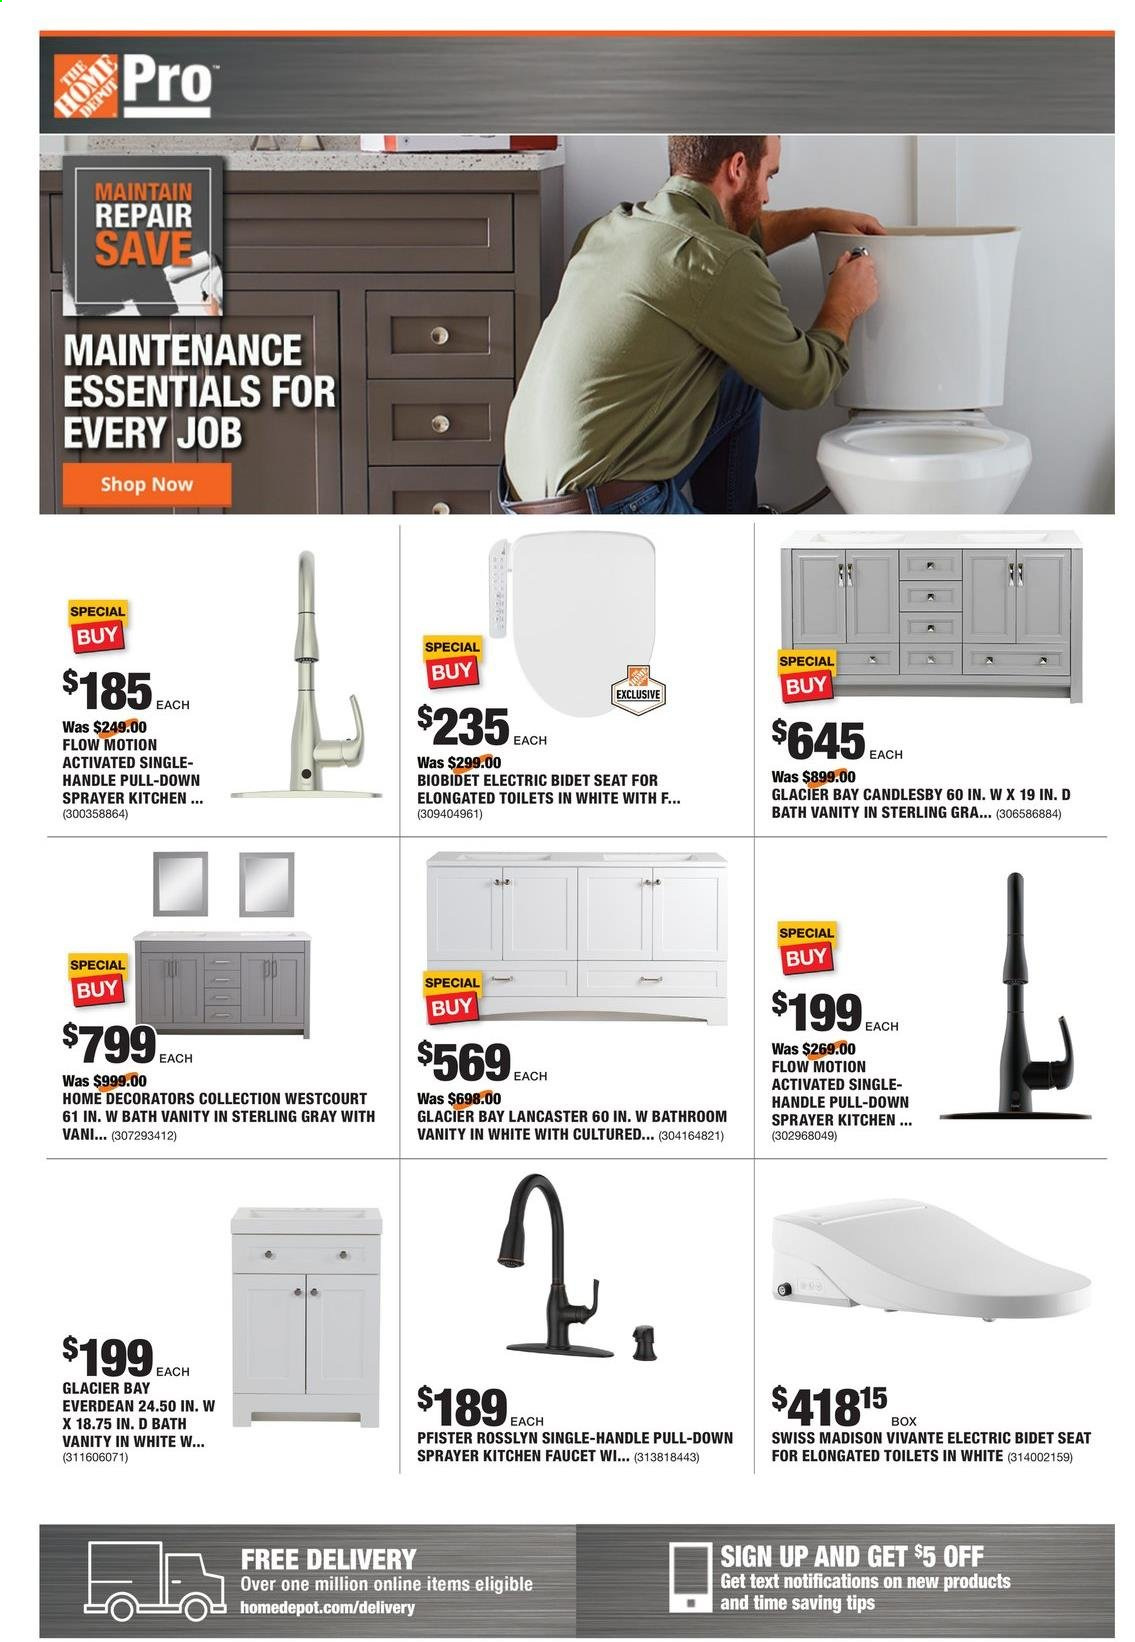 Home Depot - Shop PRO Ad from may 3 to 10 2021